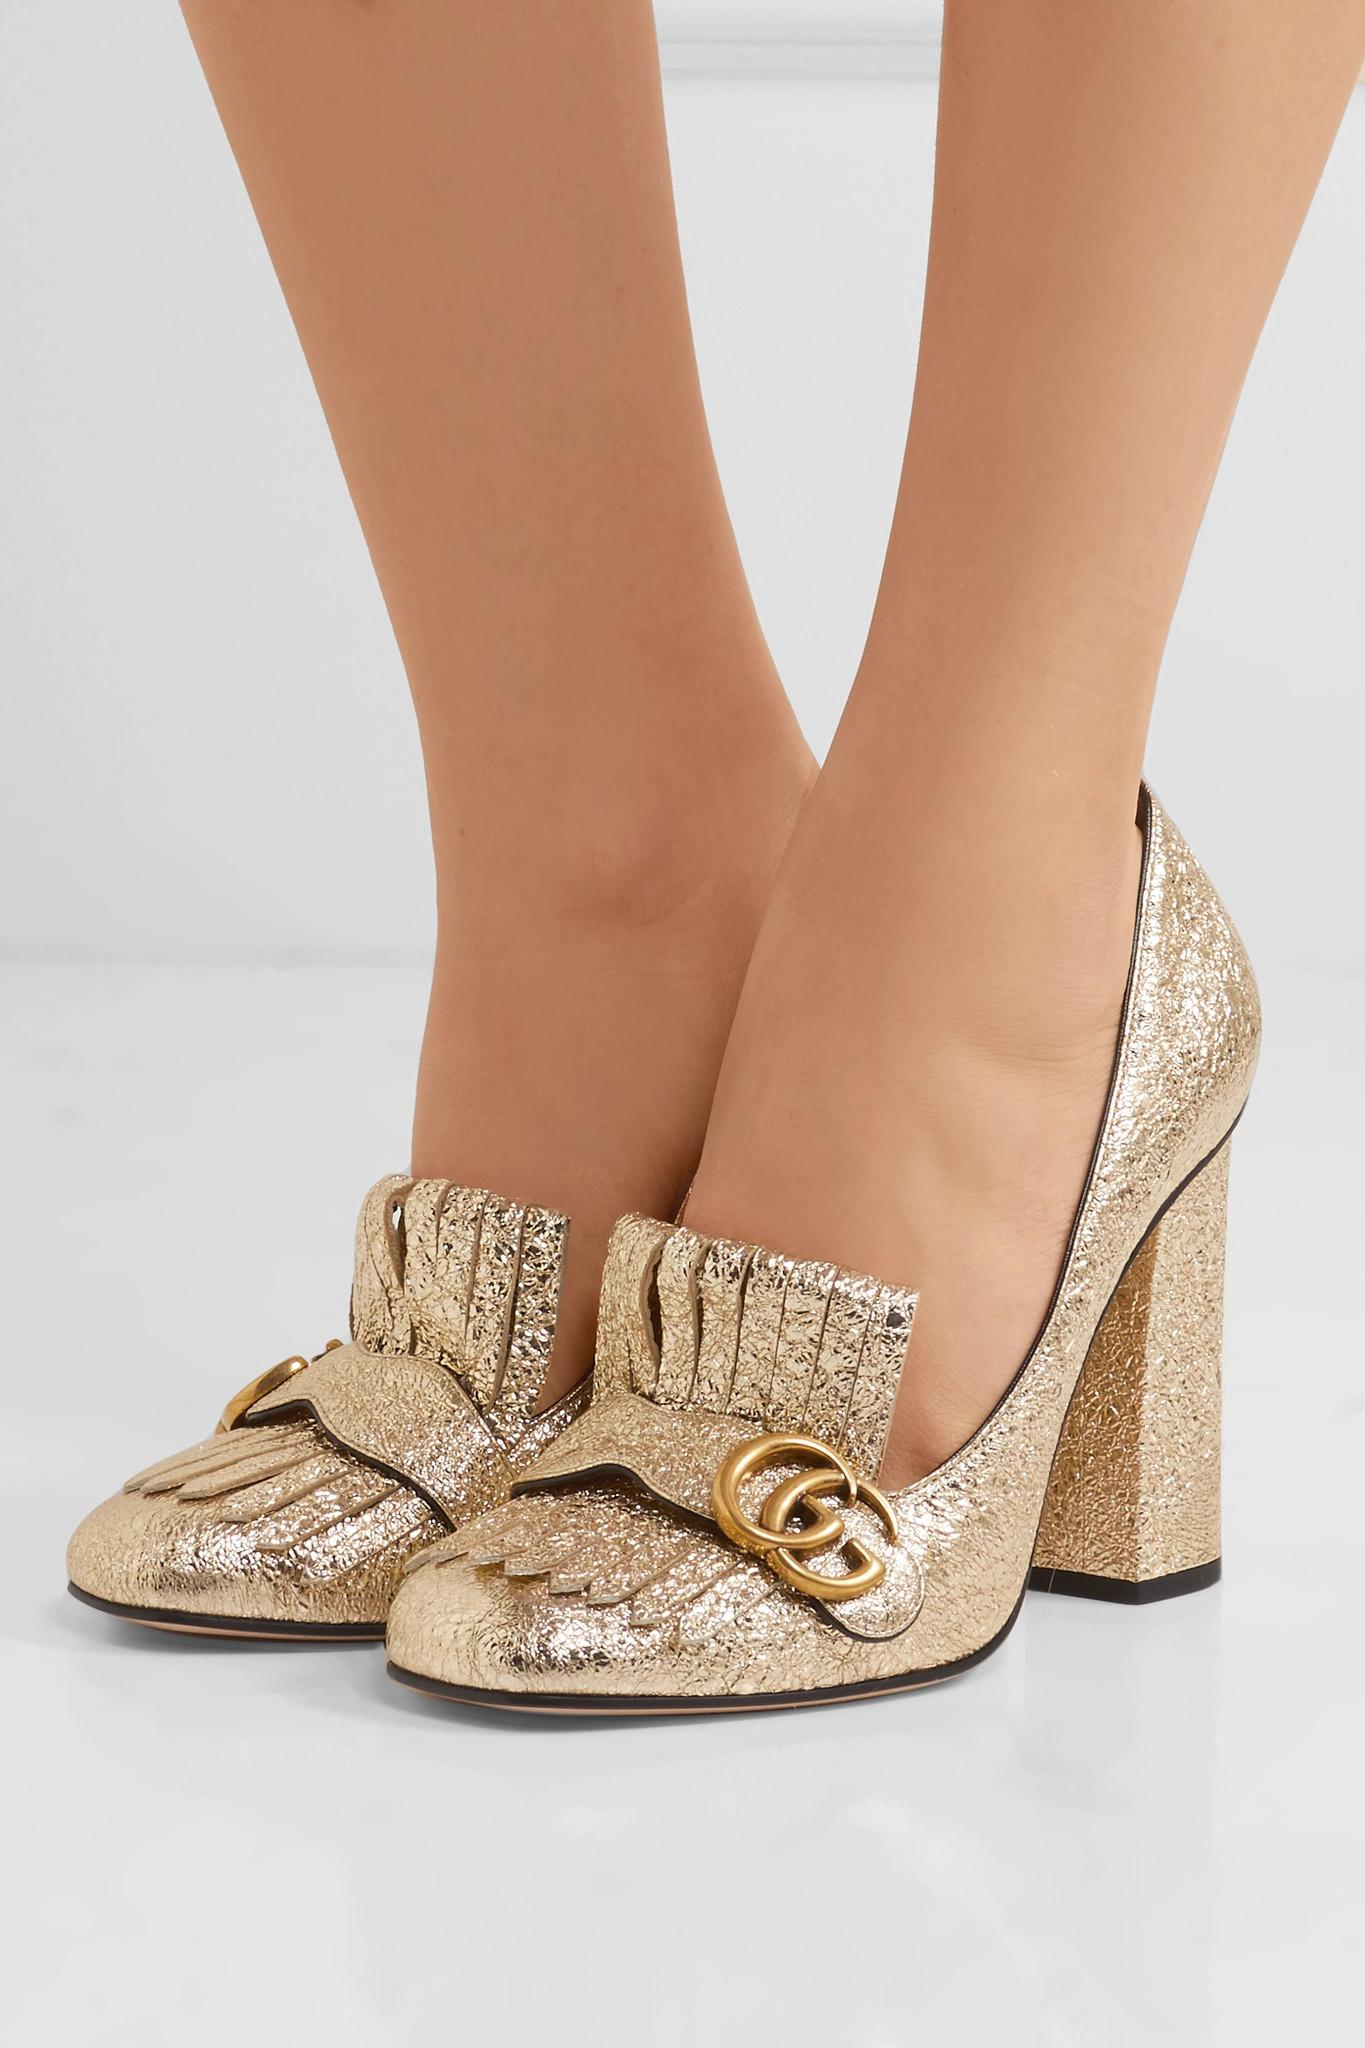 dc2aa89beae8 Gucci Marmont Fringed Metallic Cracked-leather Pumps in Metallic - Lyst